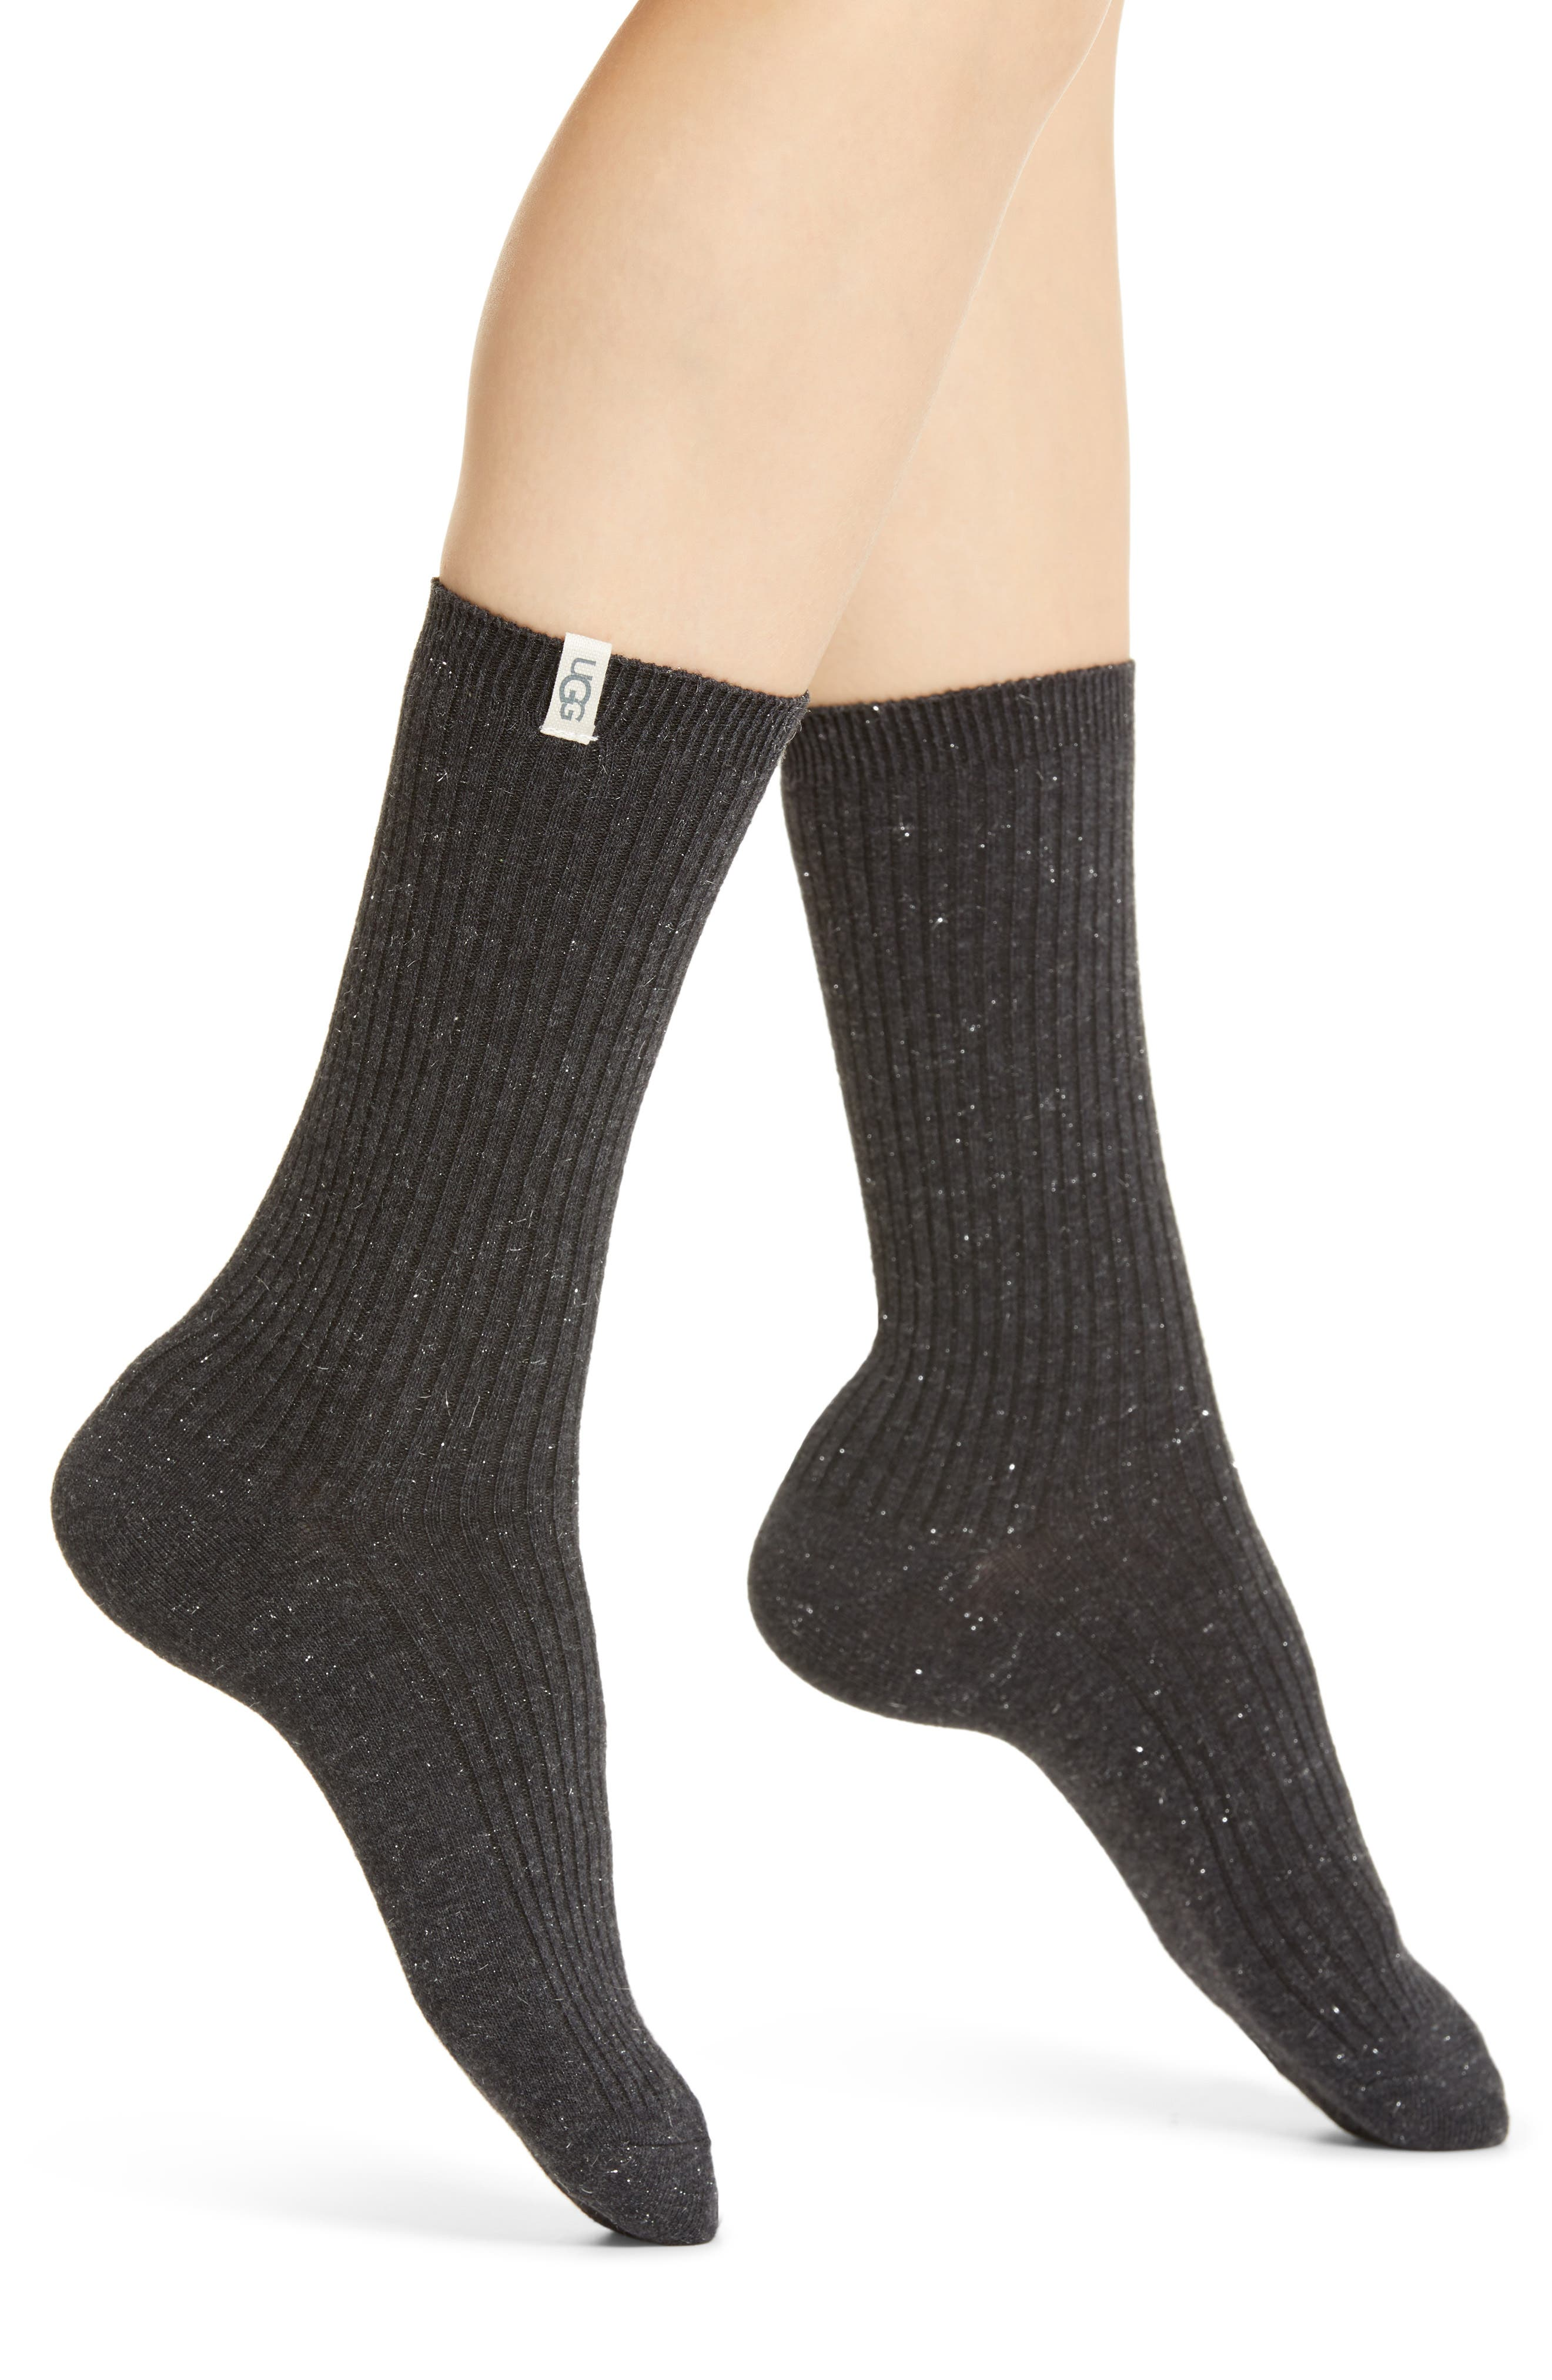 Metallic threads bring subtle shimmer to soft, stretchy ribbed socks made with reinforced heels and toes for durability. Style Name: UGG Leilani Sparkle Crew Socks. Style Number: 6106363. Available in stores.